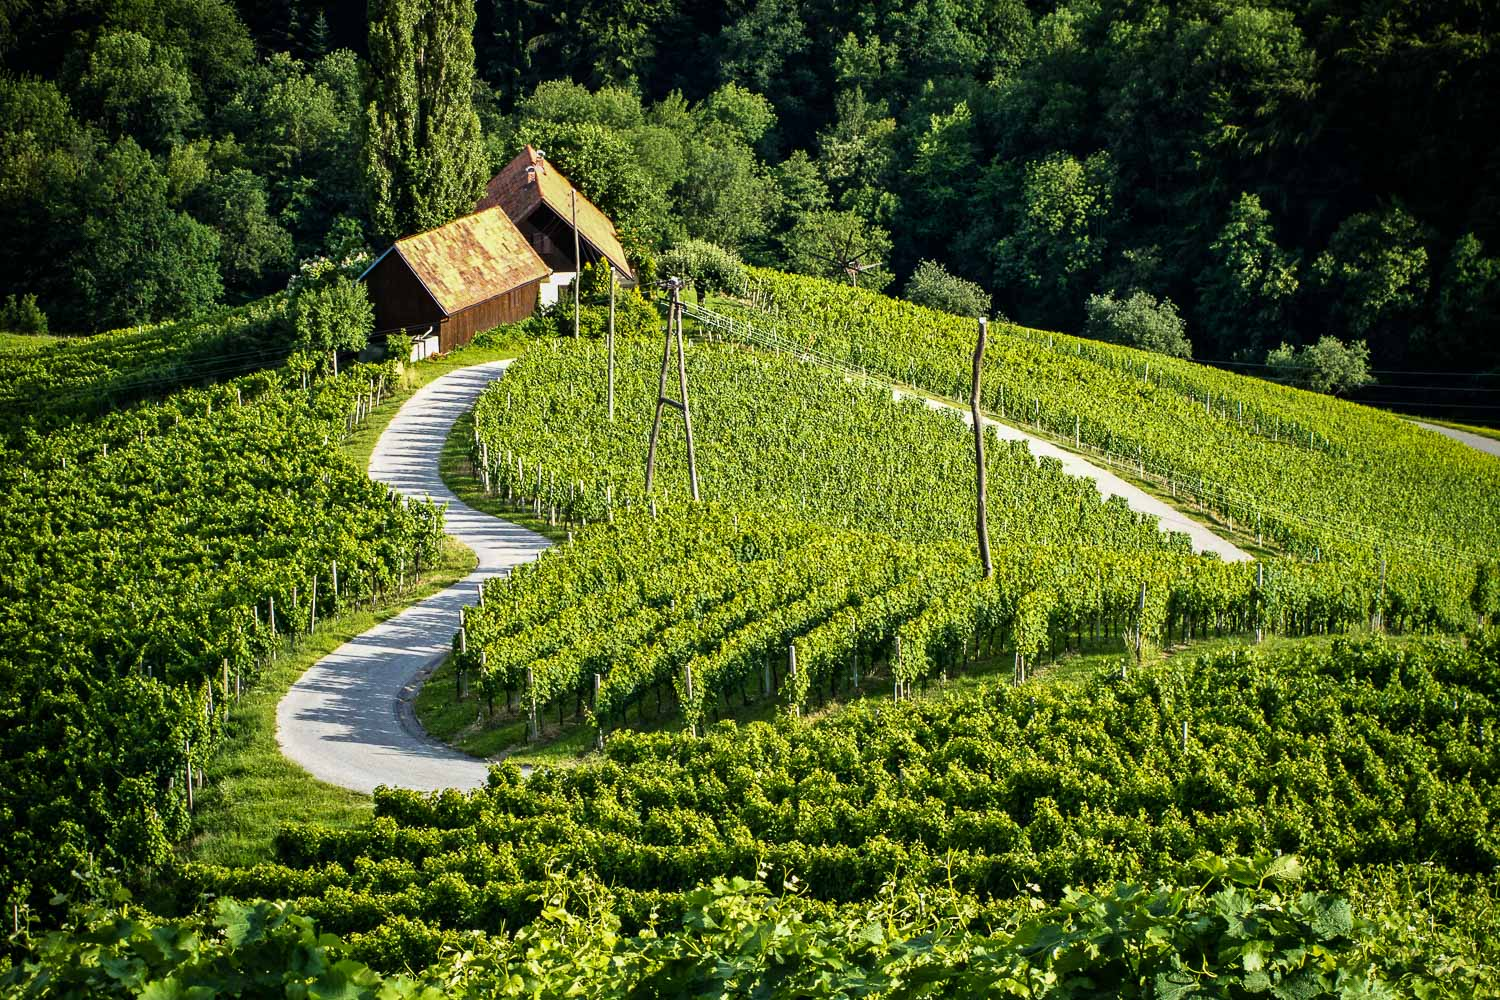 Sprouting vineyard near Maribor, encircled with a road into a beautiful heart shape.